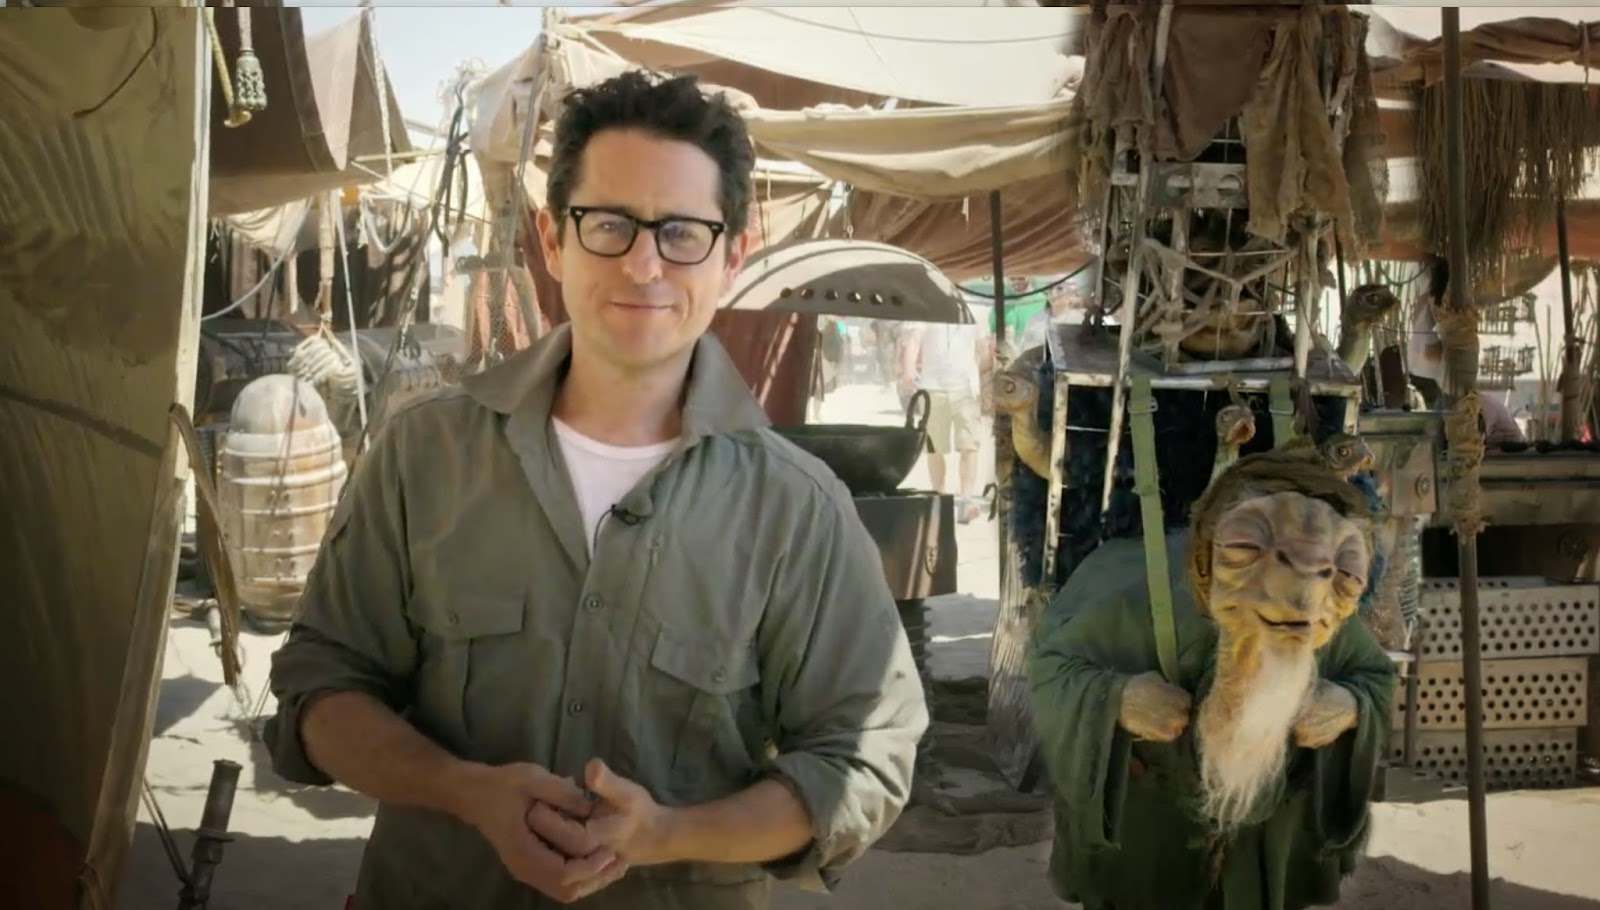 J.J Abrams in the set of Star Wars Episode 7 Harrison Ford Star Wars Episode 7 injury